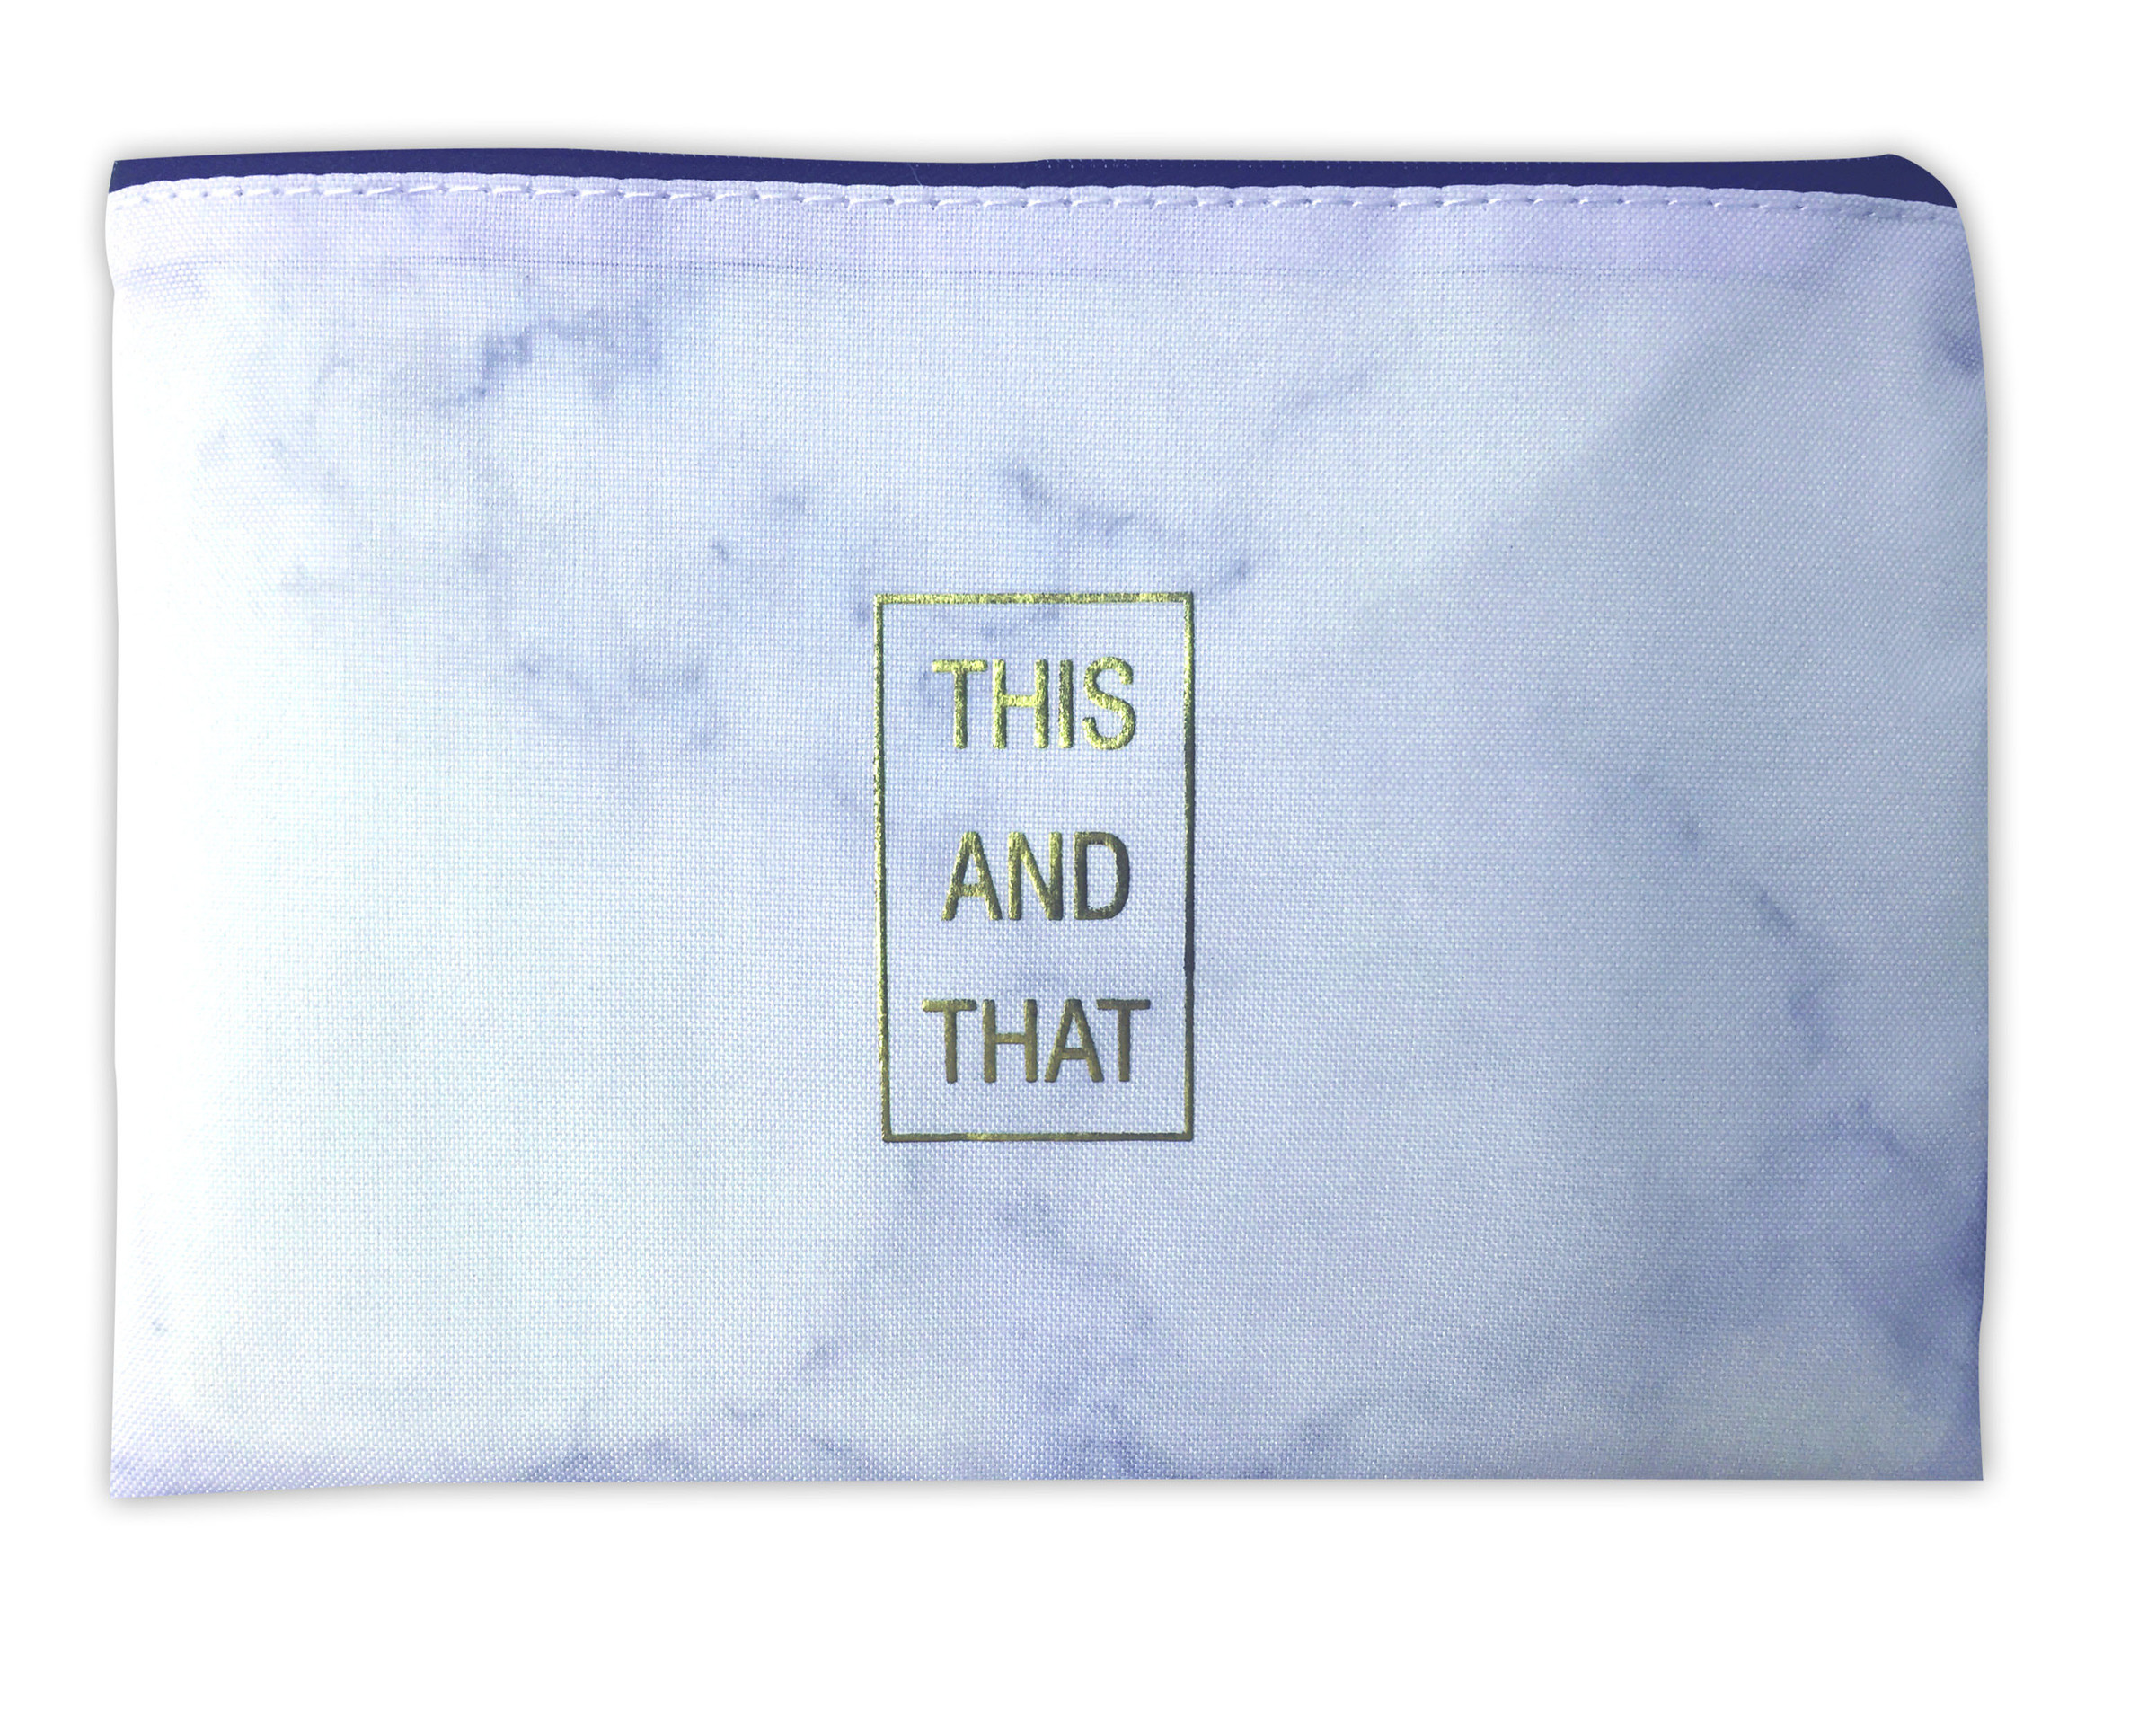 pencil-case-(this-and-that).jpg